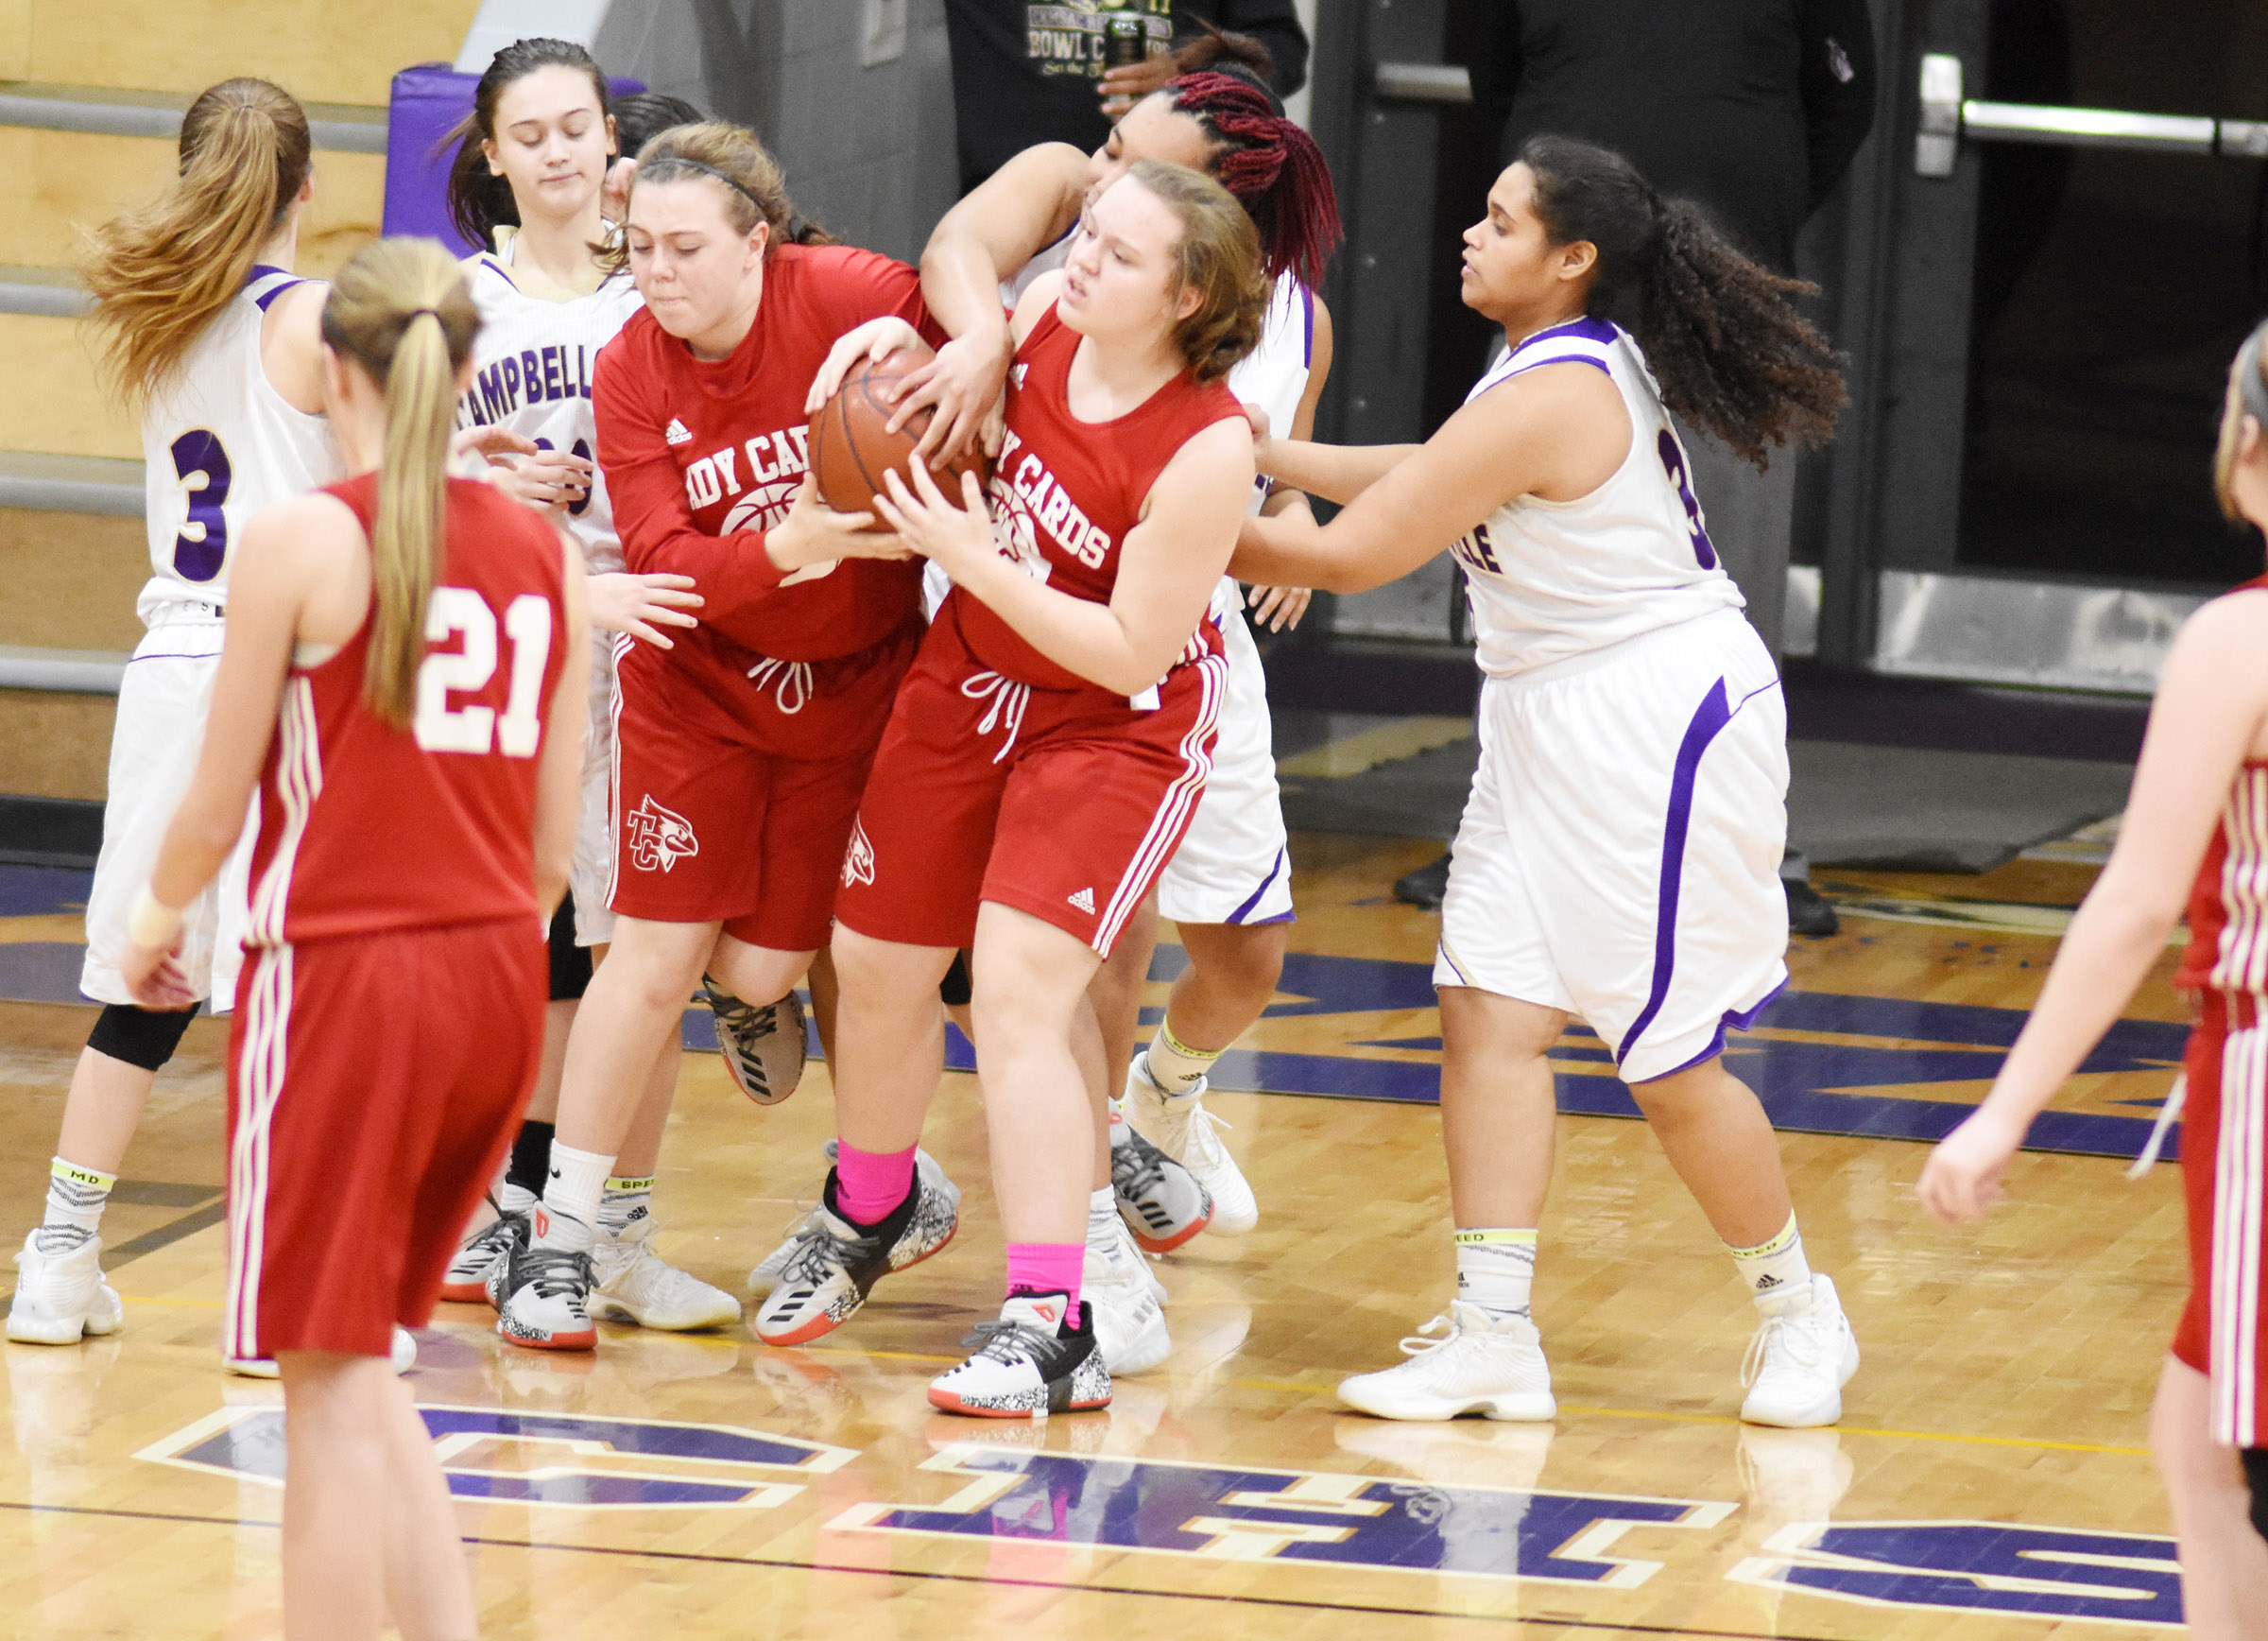 CHS girls' basketball junior varsity players fight for the ball.